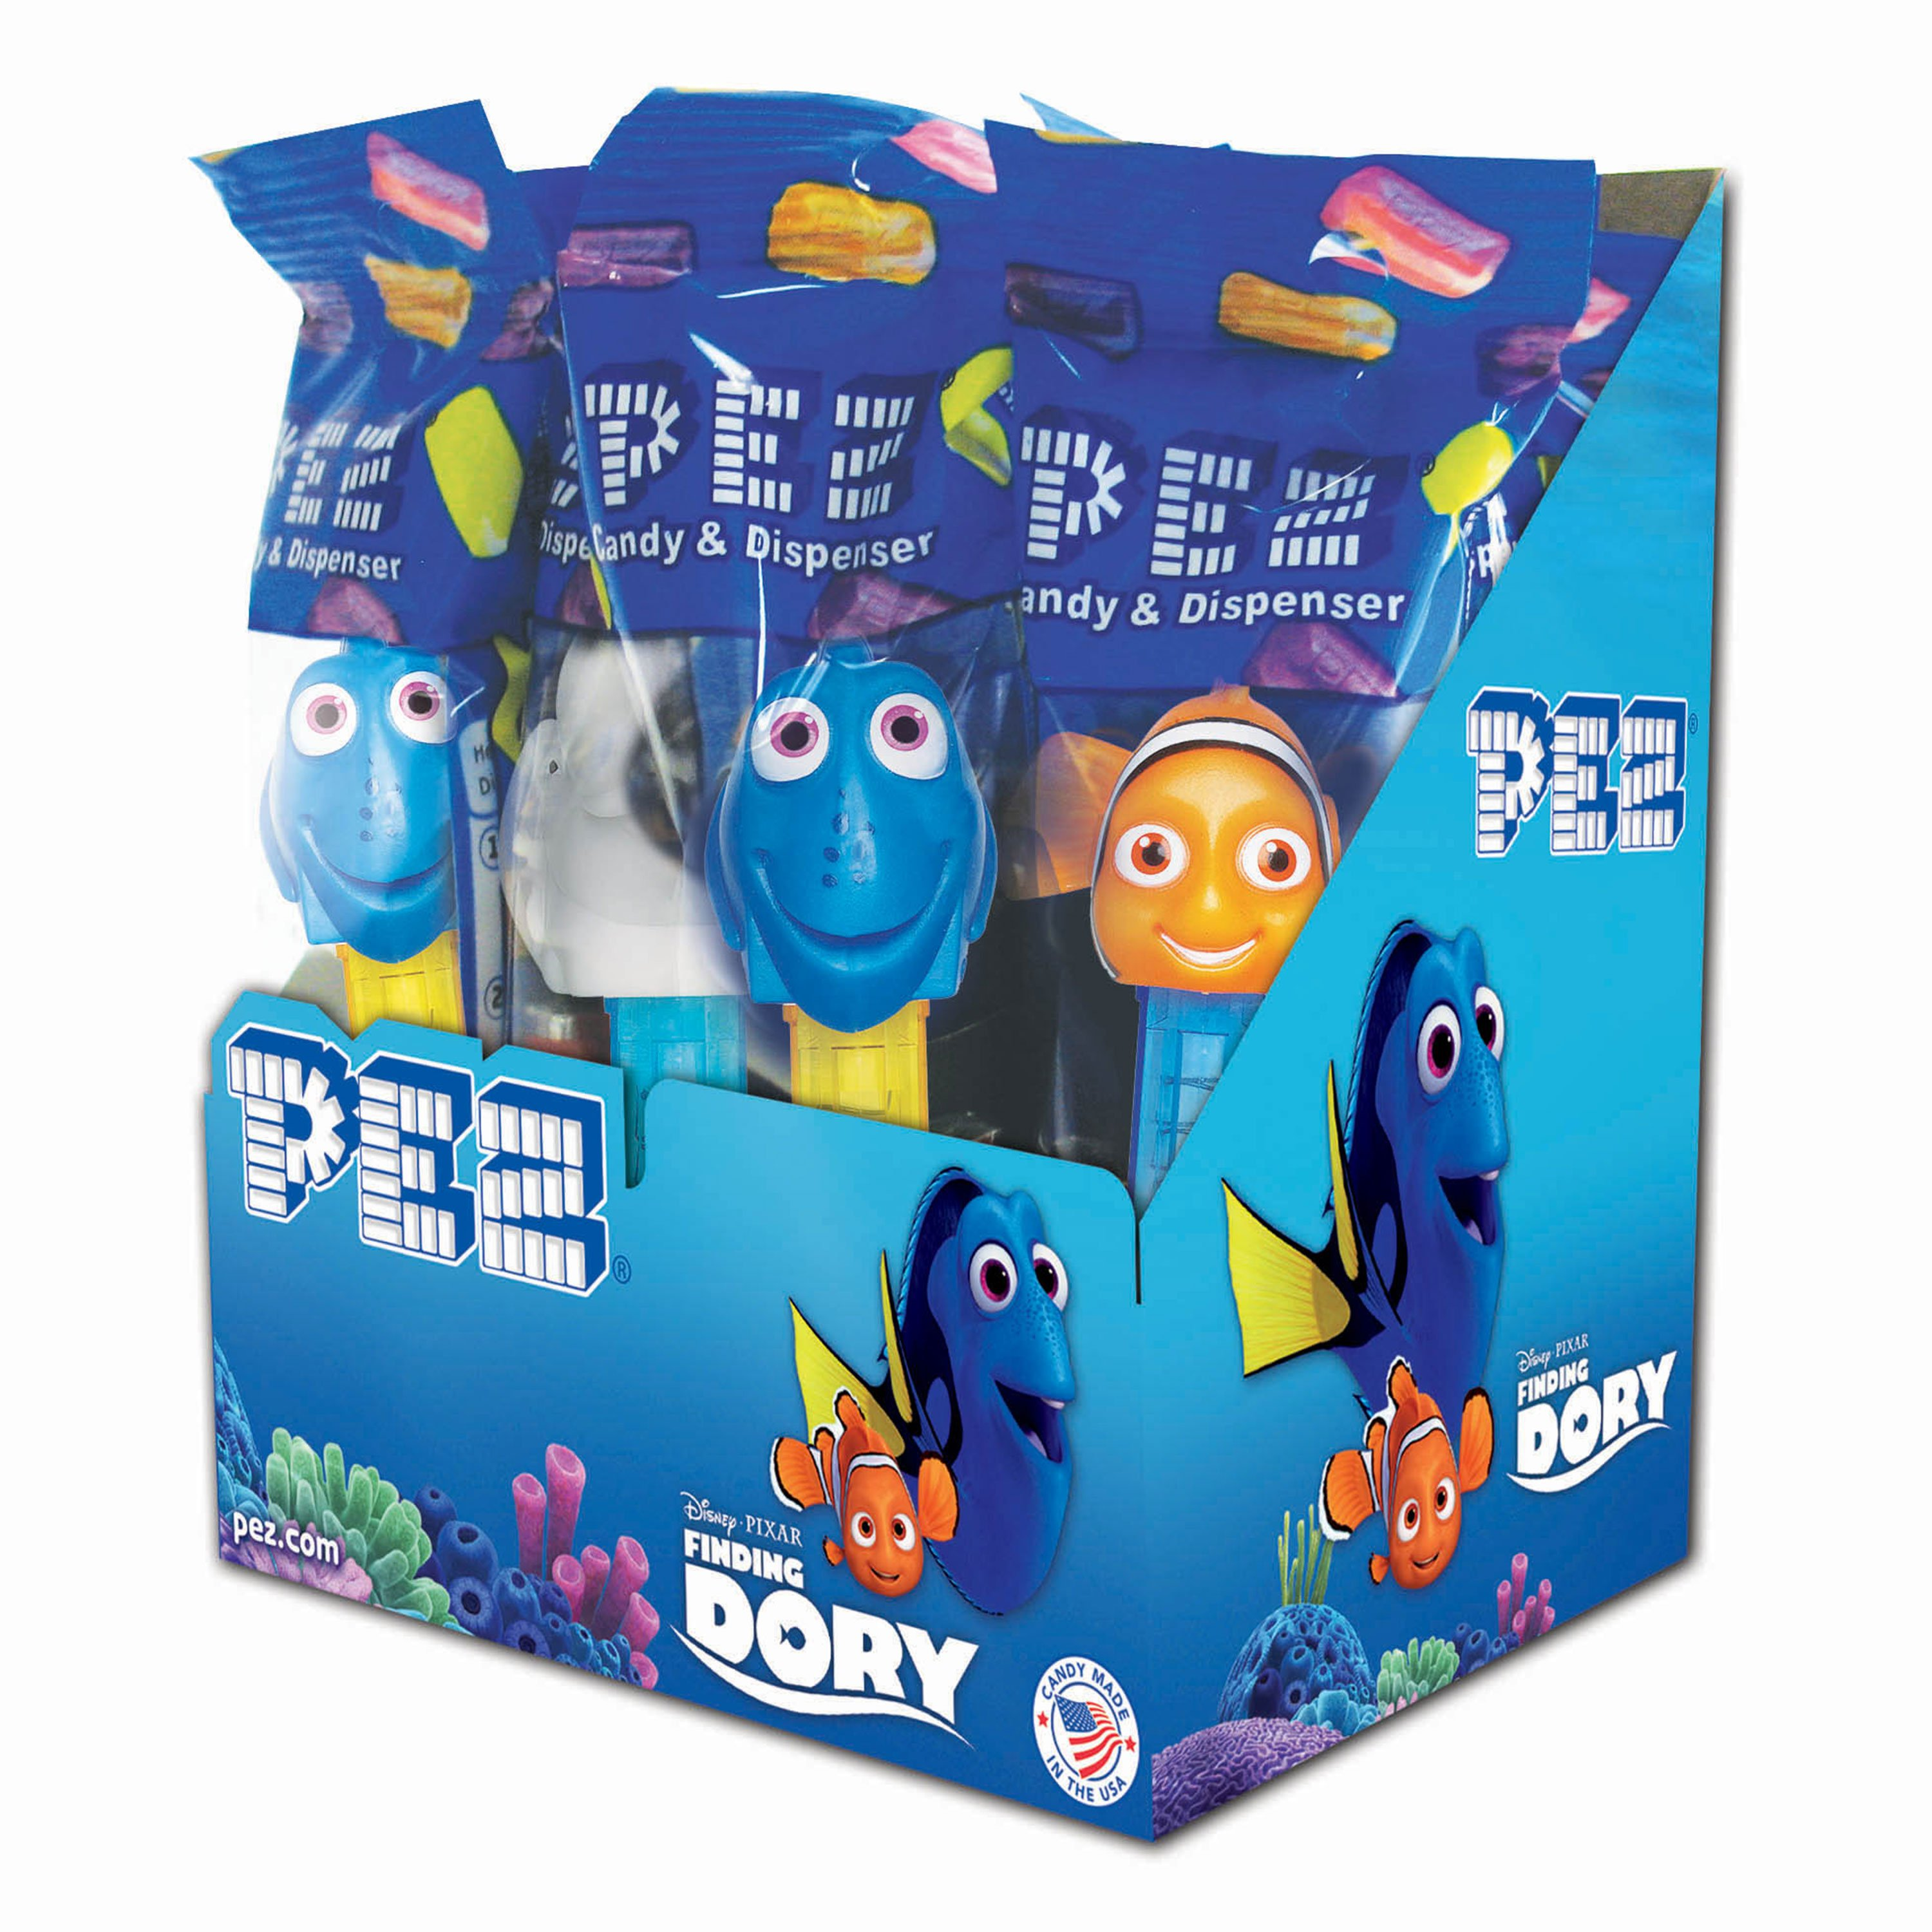 PEZ Candy Finding Dory Assortment, candy dispenser plus 2 rolls of assorted fruit candy, box of 12